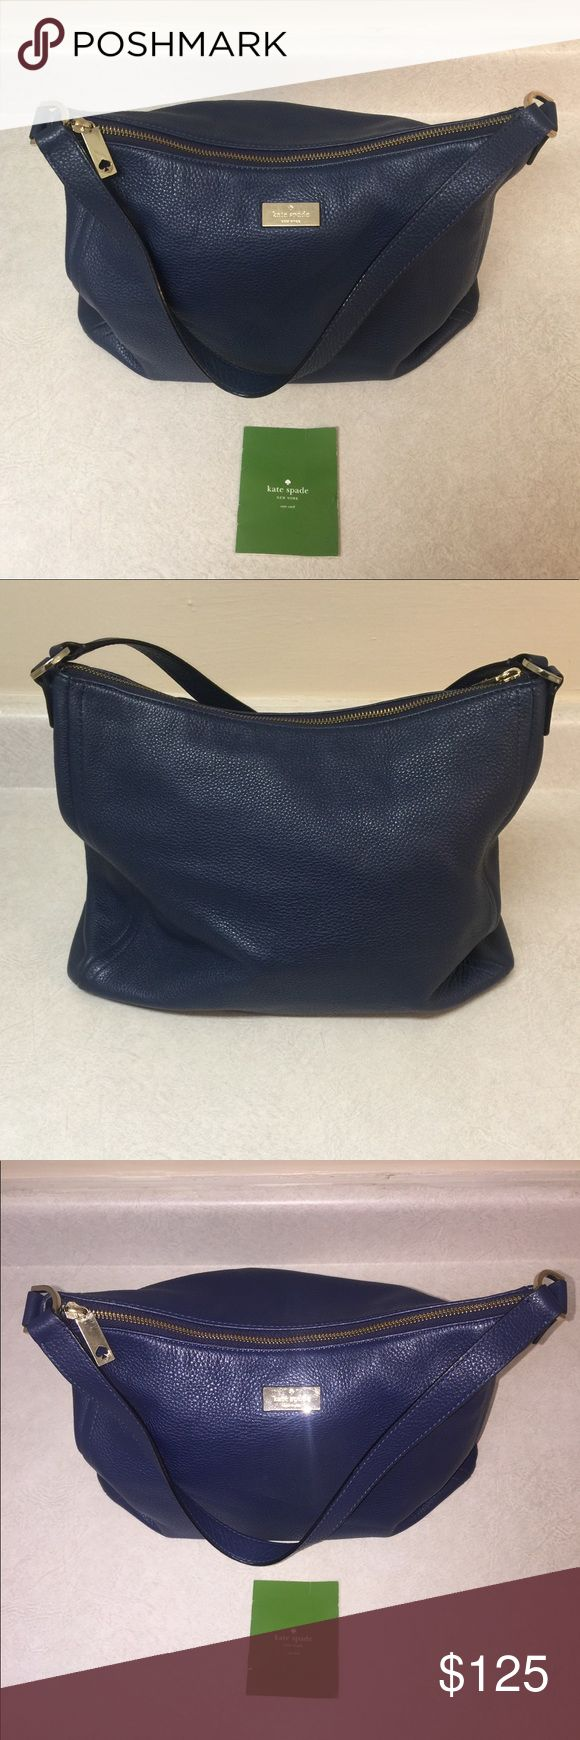 ♠️Kate Spade Leather Hobo♠️ Good condition. Navy blue color. I used the flash on camera for a better view in some pictures. This was an everyday purse for me. No cracks or tears in straps. No stains or tears on outside of purse. There are brown stains on inside lining that could be easily cleaned. There is also a small ink line at bottom of purse which can be seen in picture if you zoom in. Comes with care card. kate spade Bags